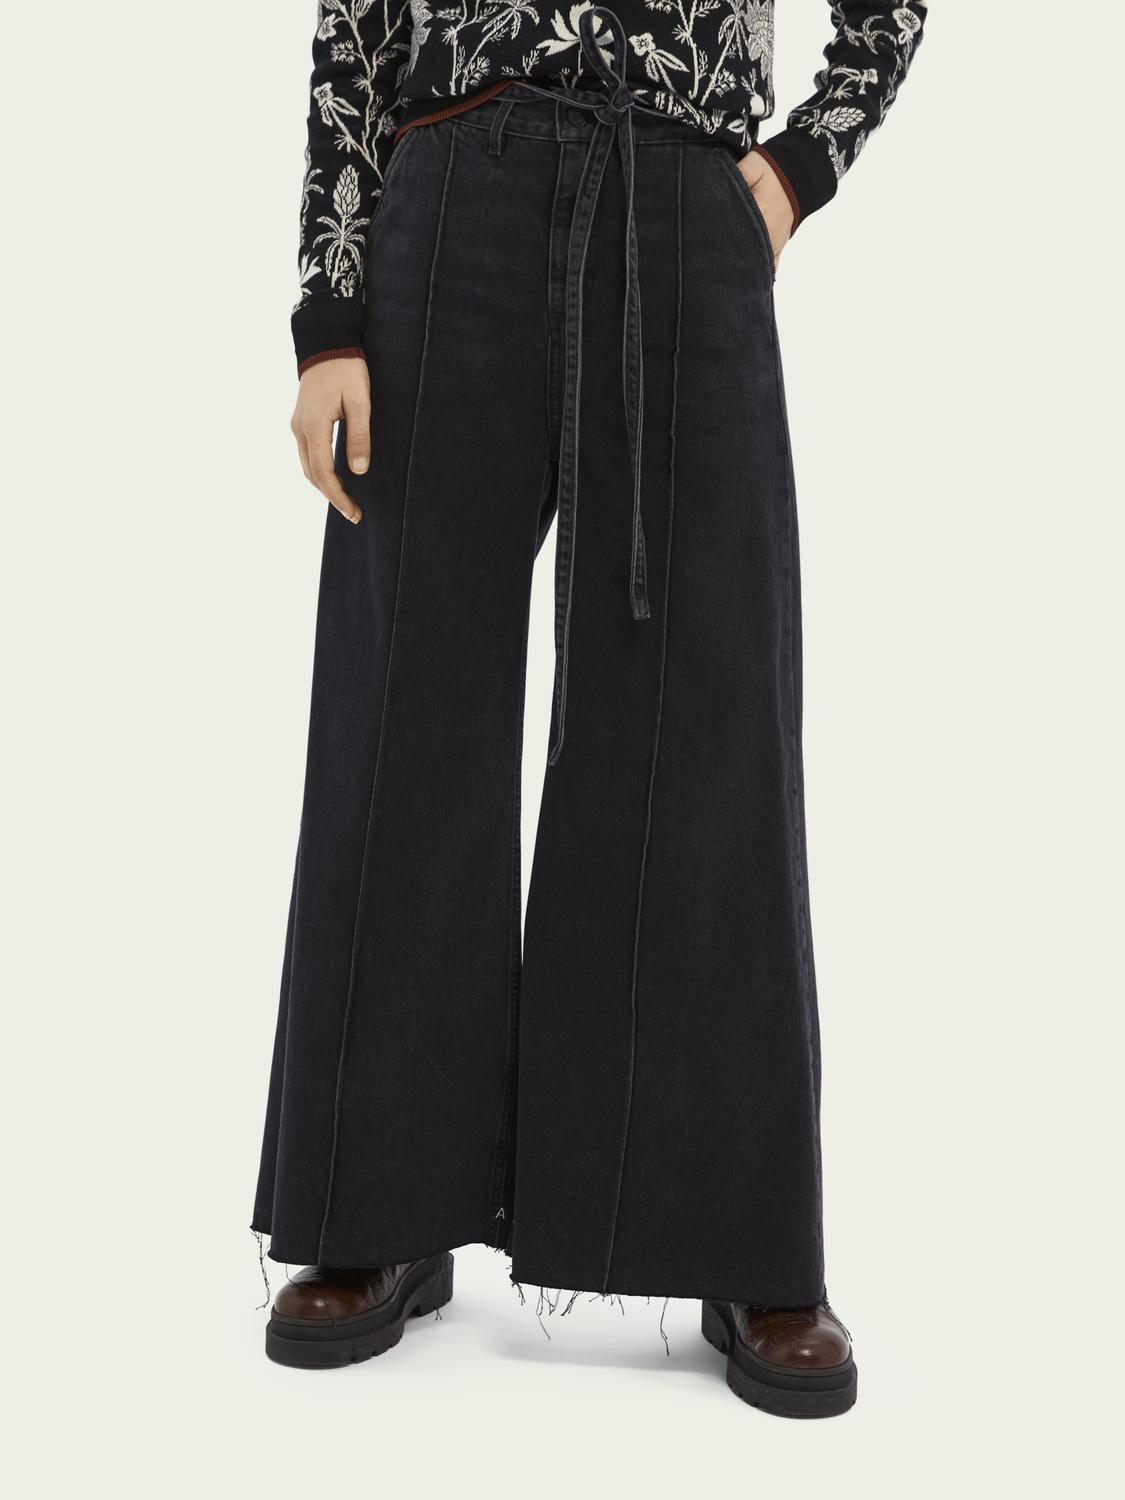 High-rise extra-wide leg jeans ─ Black Butter